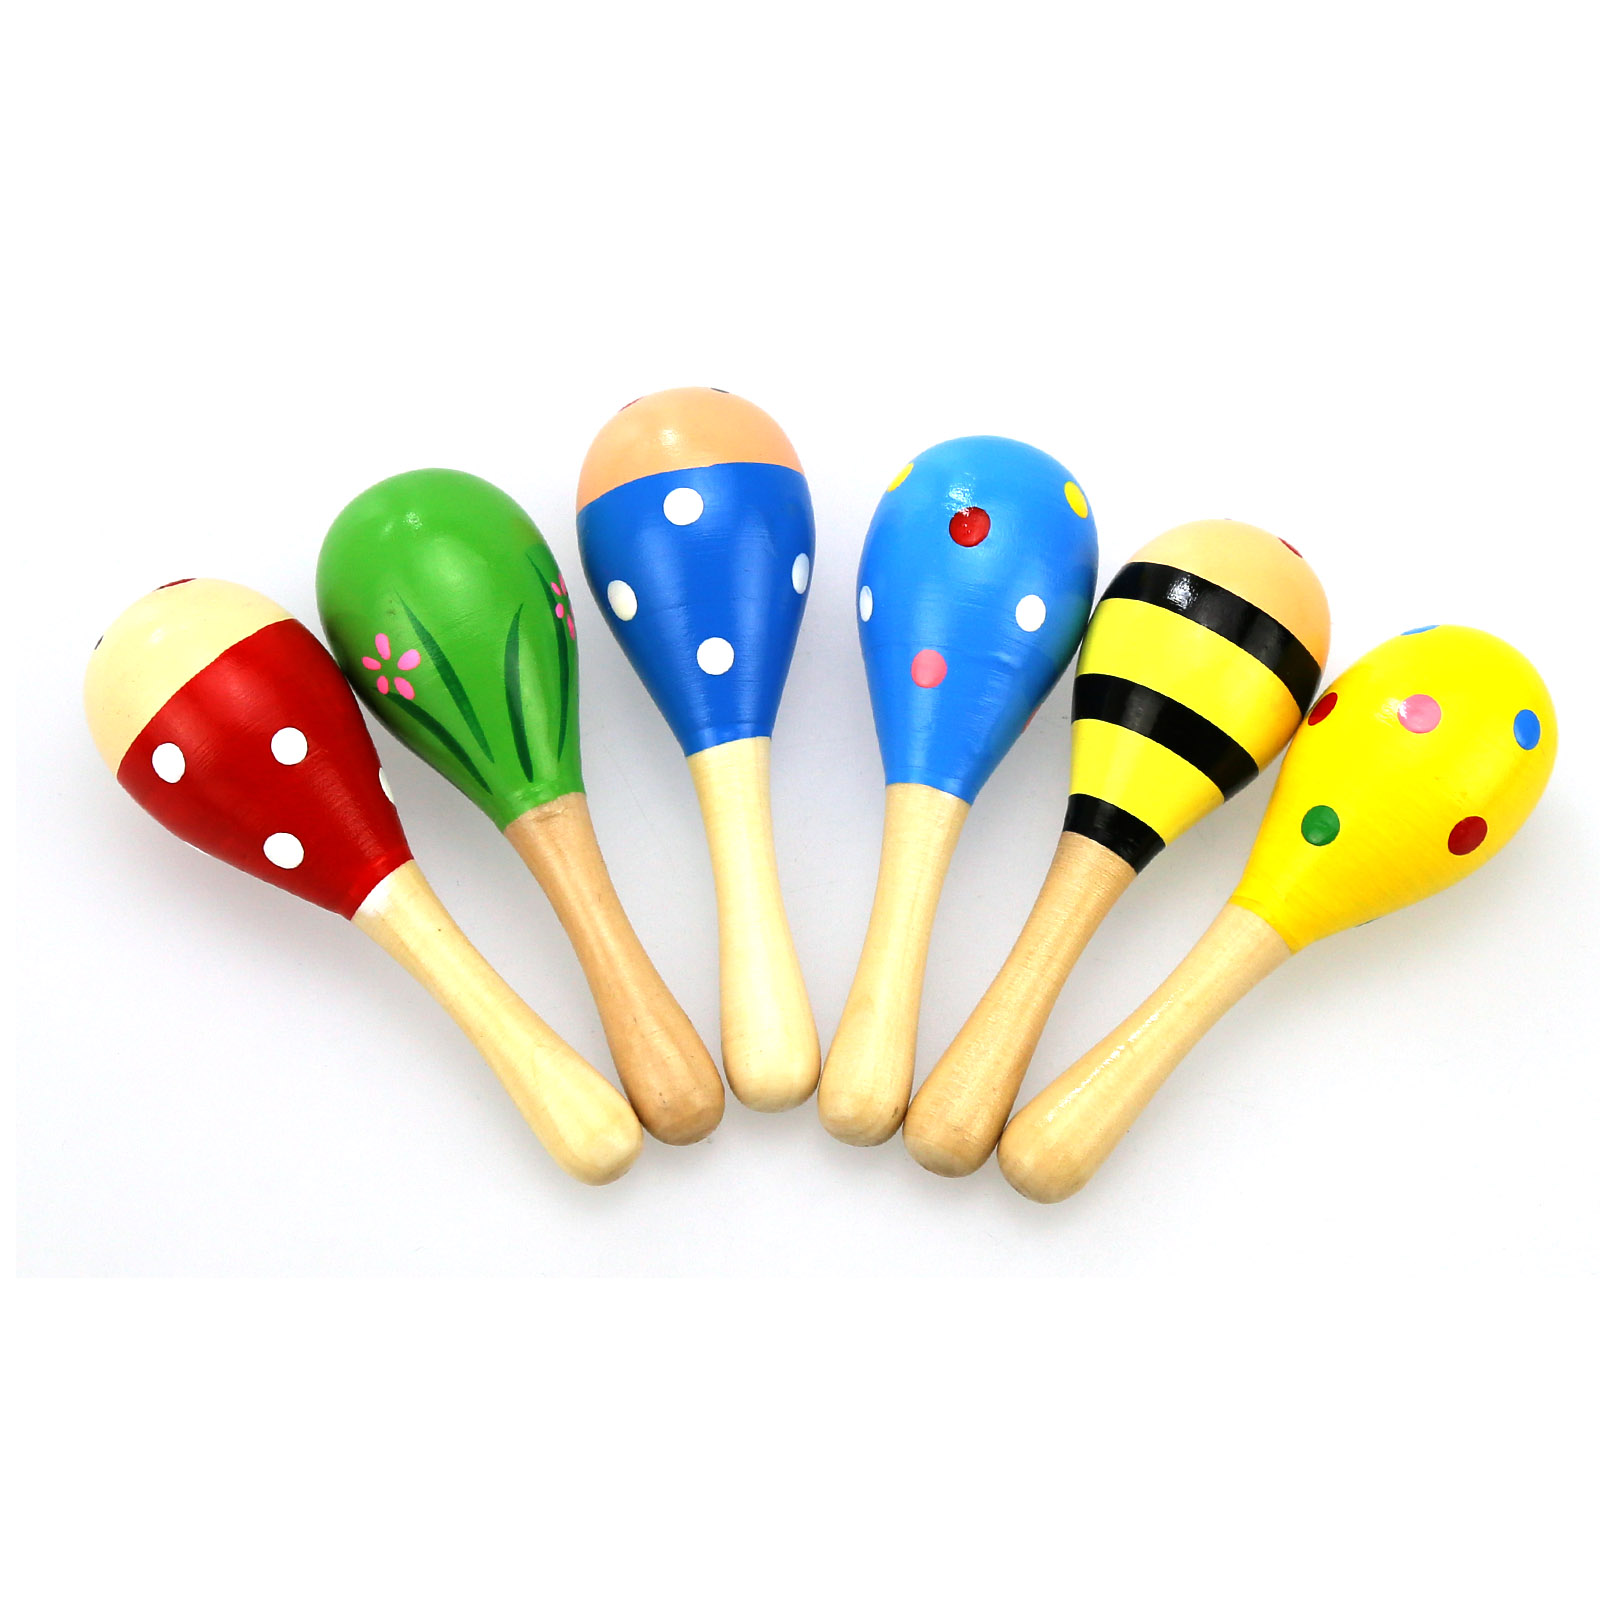 1PC Baby Wooden Ball Toys Baby Rattles Sand Hammer Musical Toy Instrument Sound Maker Baby Attetion Training Toy